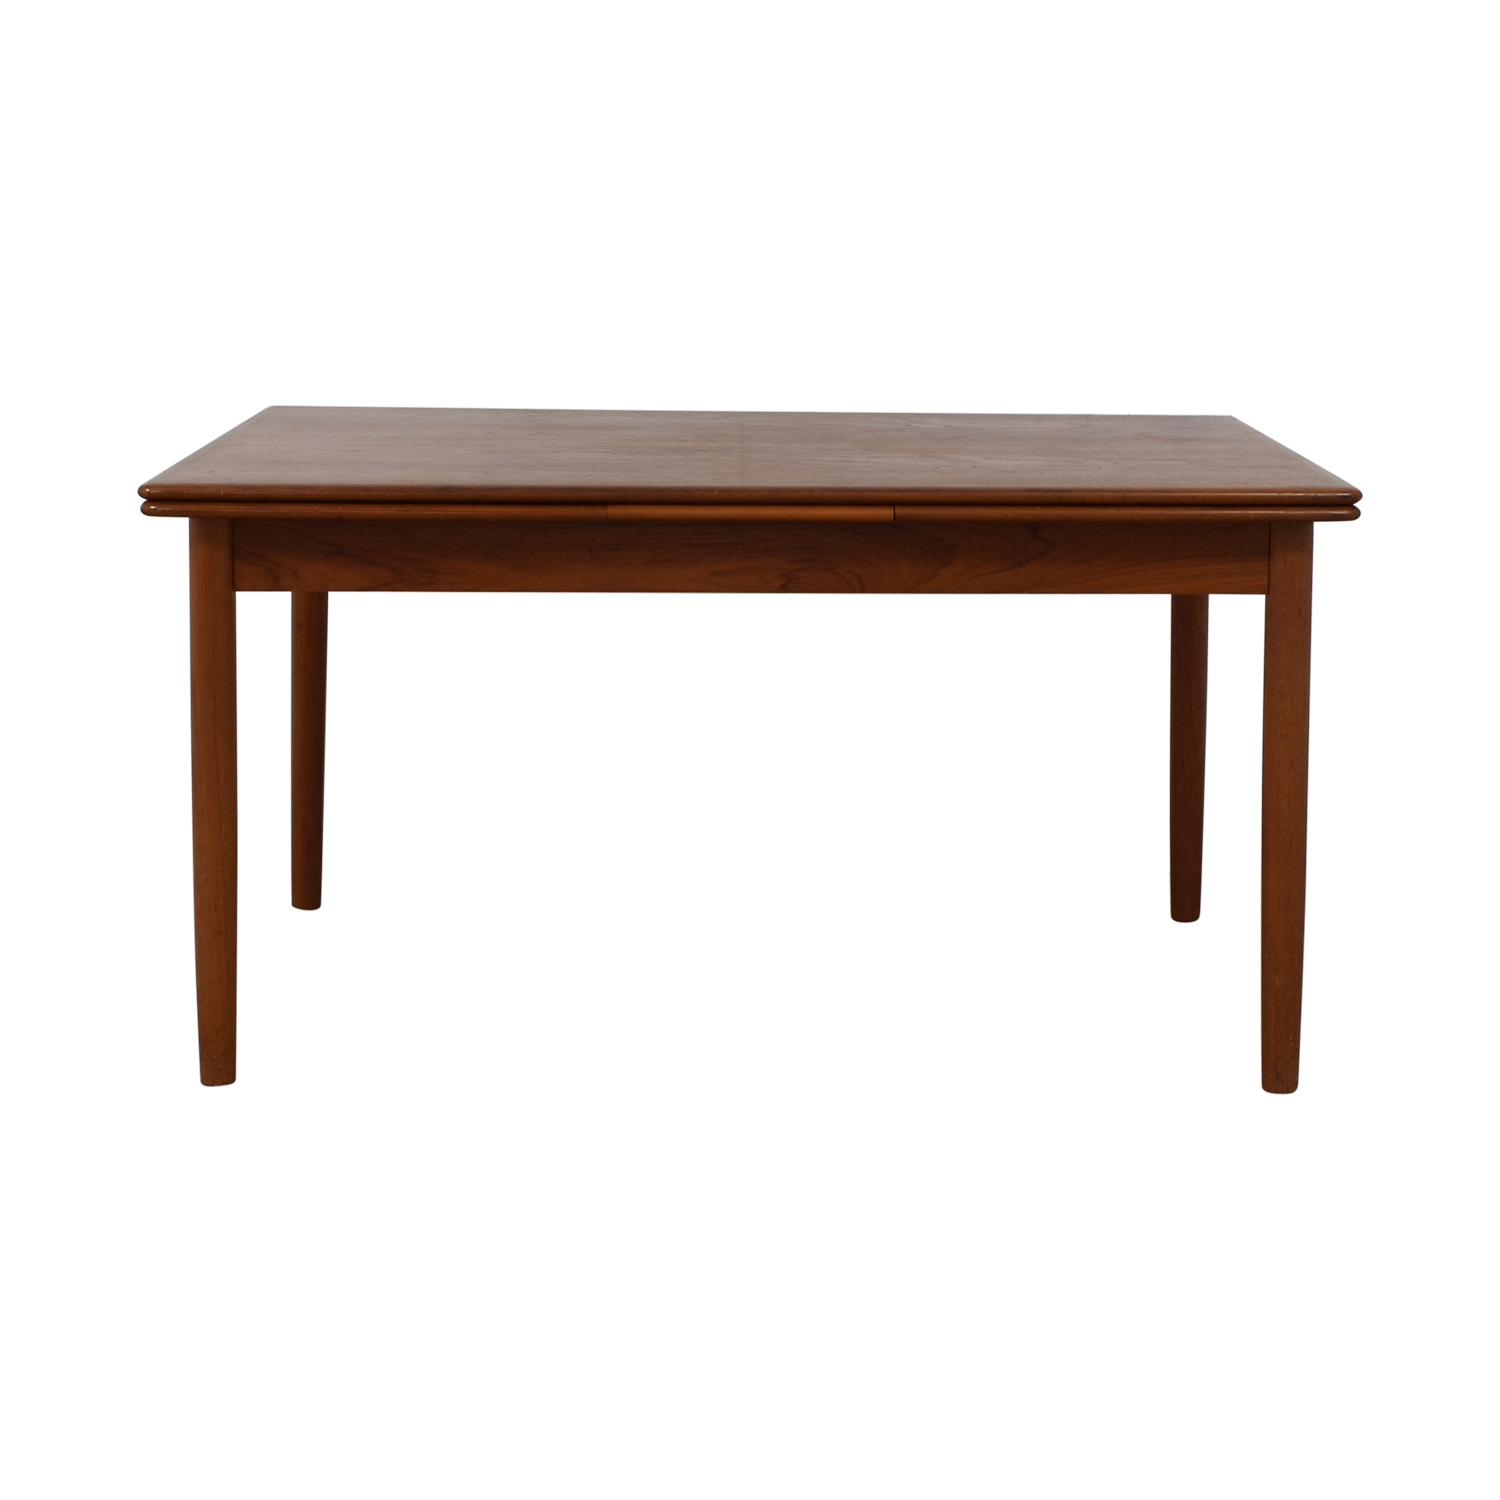 International Design Center International Design Center Danish Modern Dining Table Brown